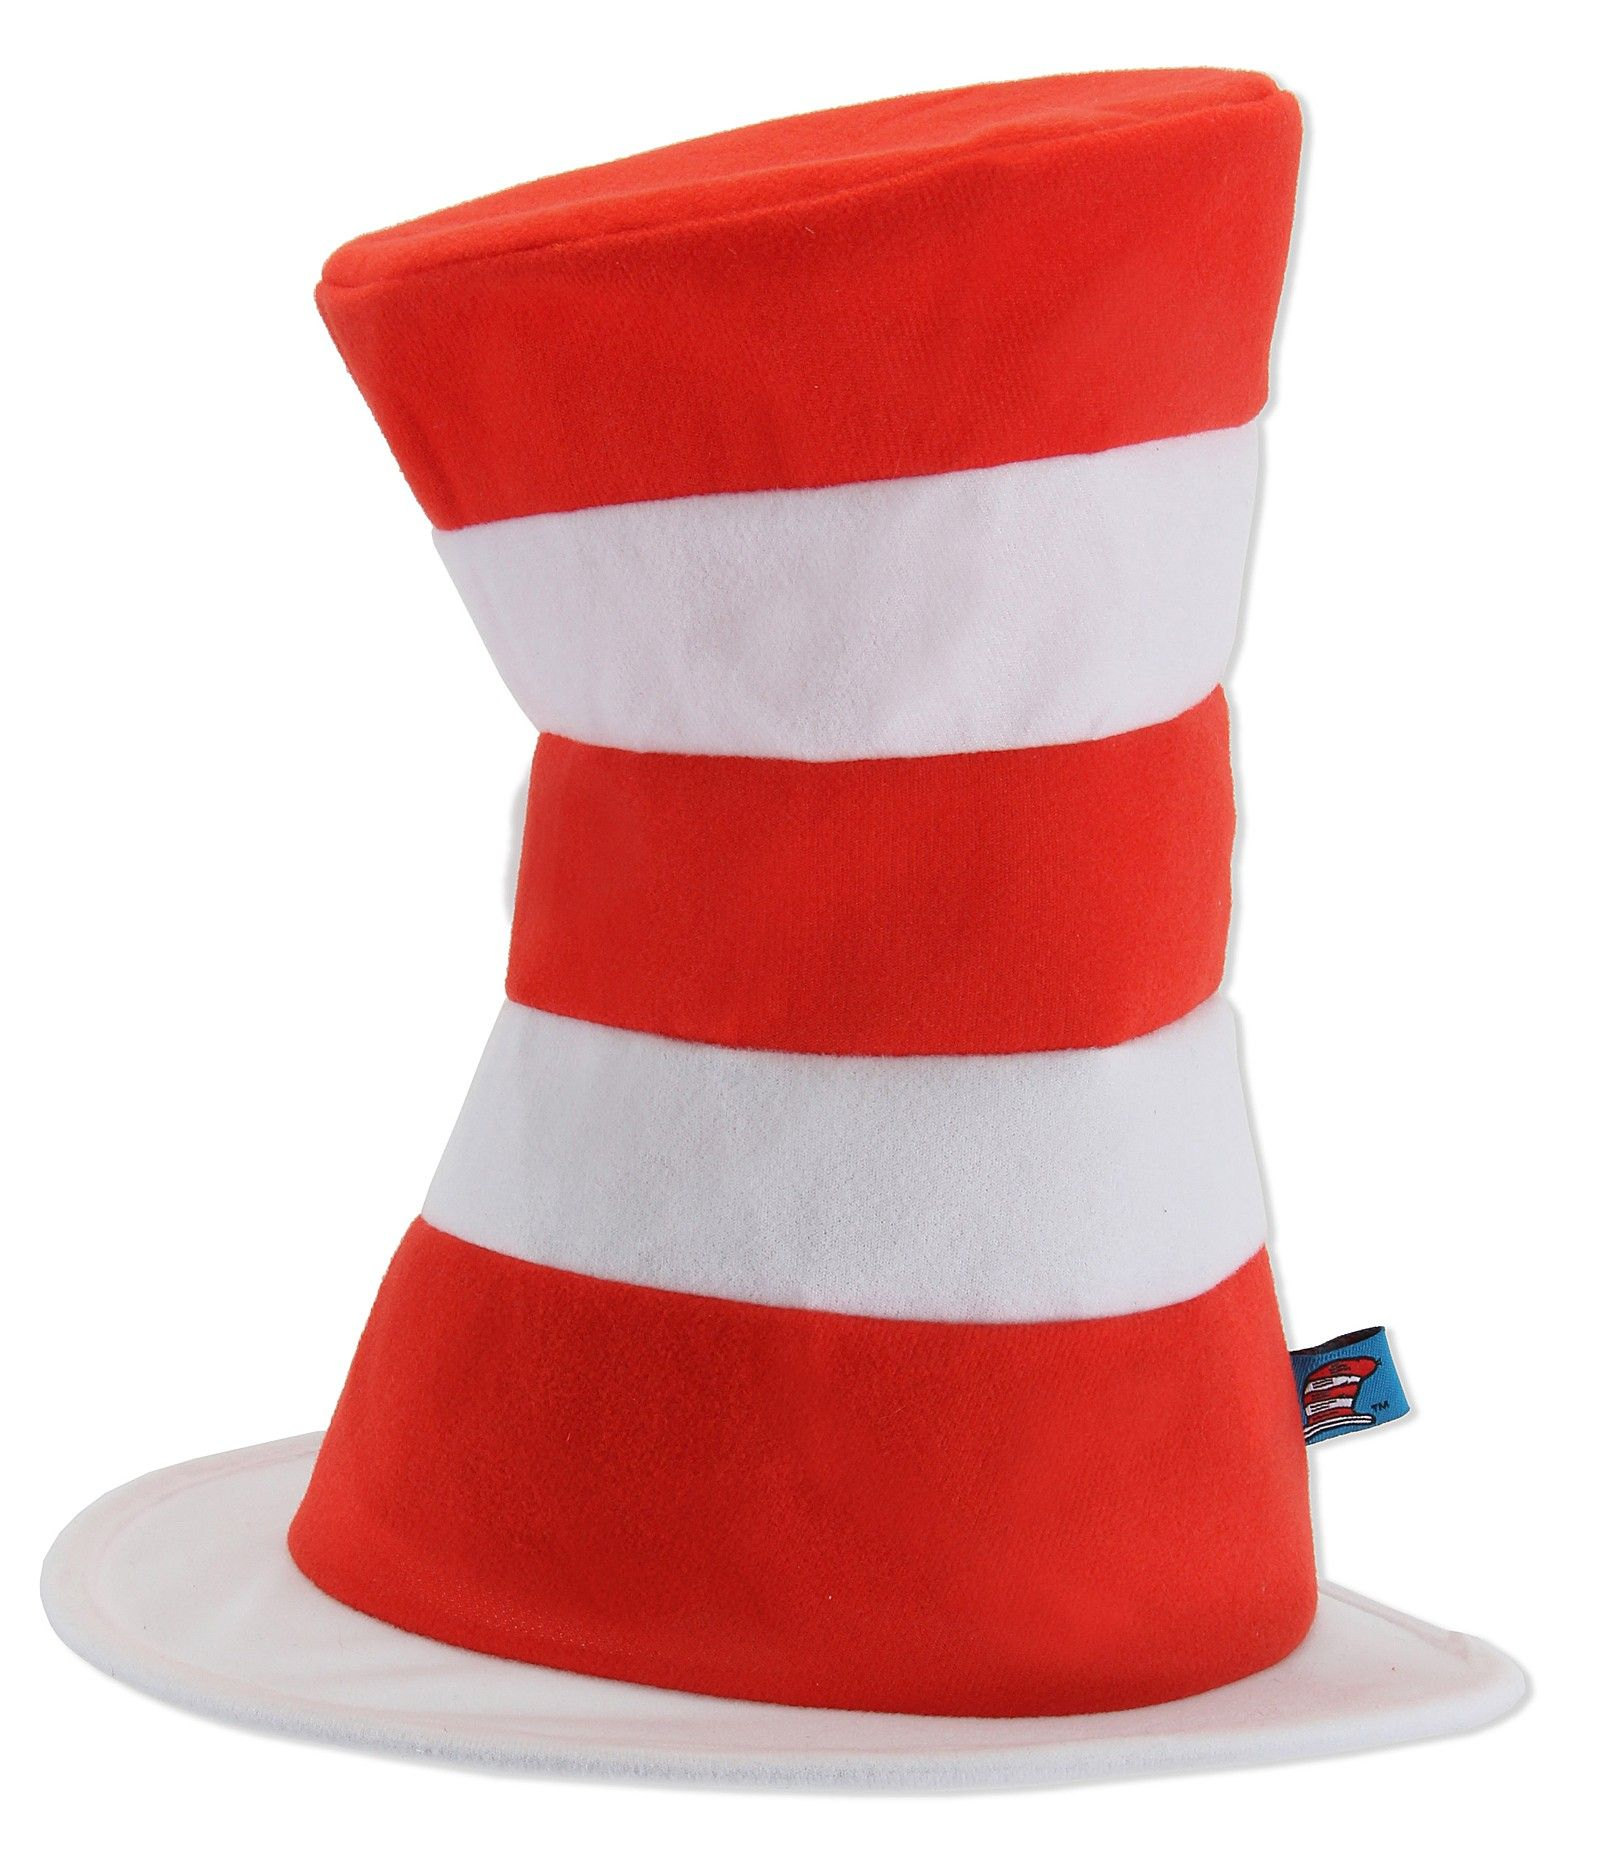 Seuss Cat In The Hat Toddler Child Fleece Costume Accessory Tophat Dr